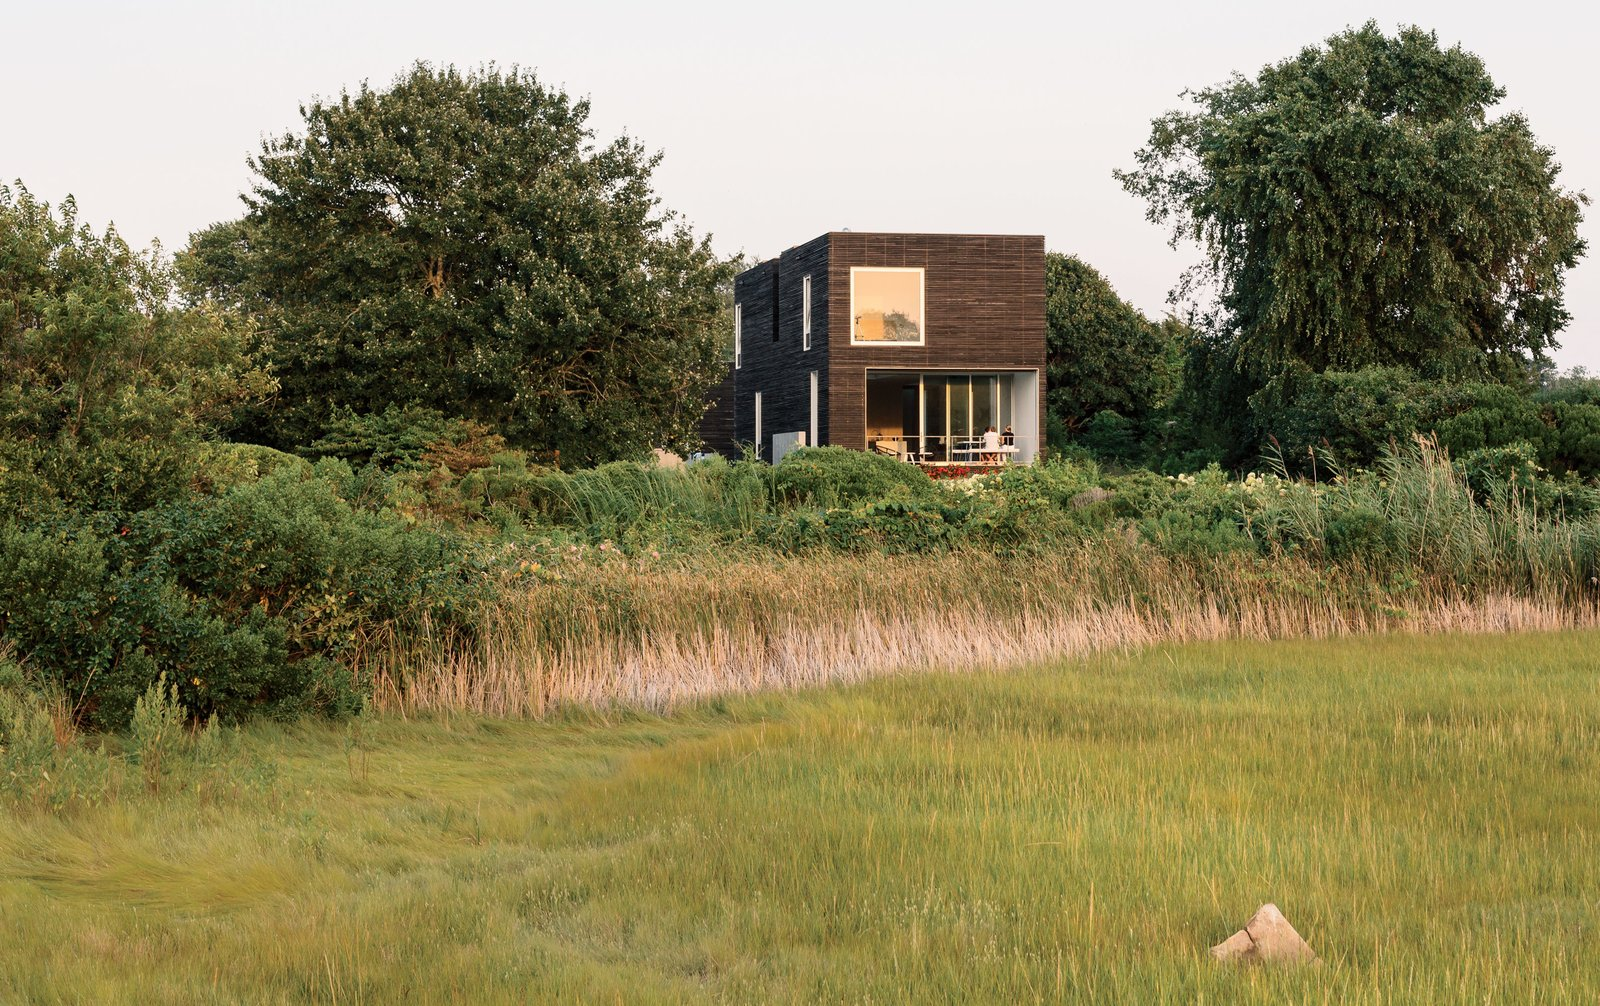 Native New Yorkers, the Merola family have long held a tradition of spending summers in Rhode Island. When they learned the costs of renovating their existing cottage would significantly outweigh the benefits, they instead opted to build new. The result—a distinctively modernist box structure clad in milled slats of charred, brushed, and oiled cypress manufactured by Delta Millworks—sits nestled within the marshy landscape of Quonochontaug Pond. Add a Home to Dwell - Photo 1 of 3